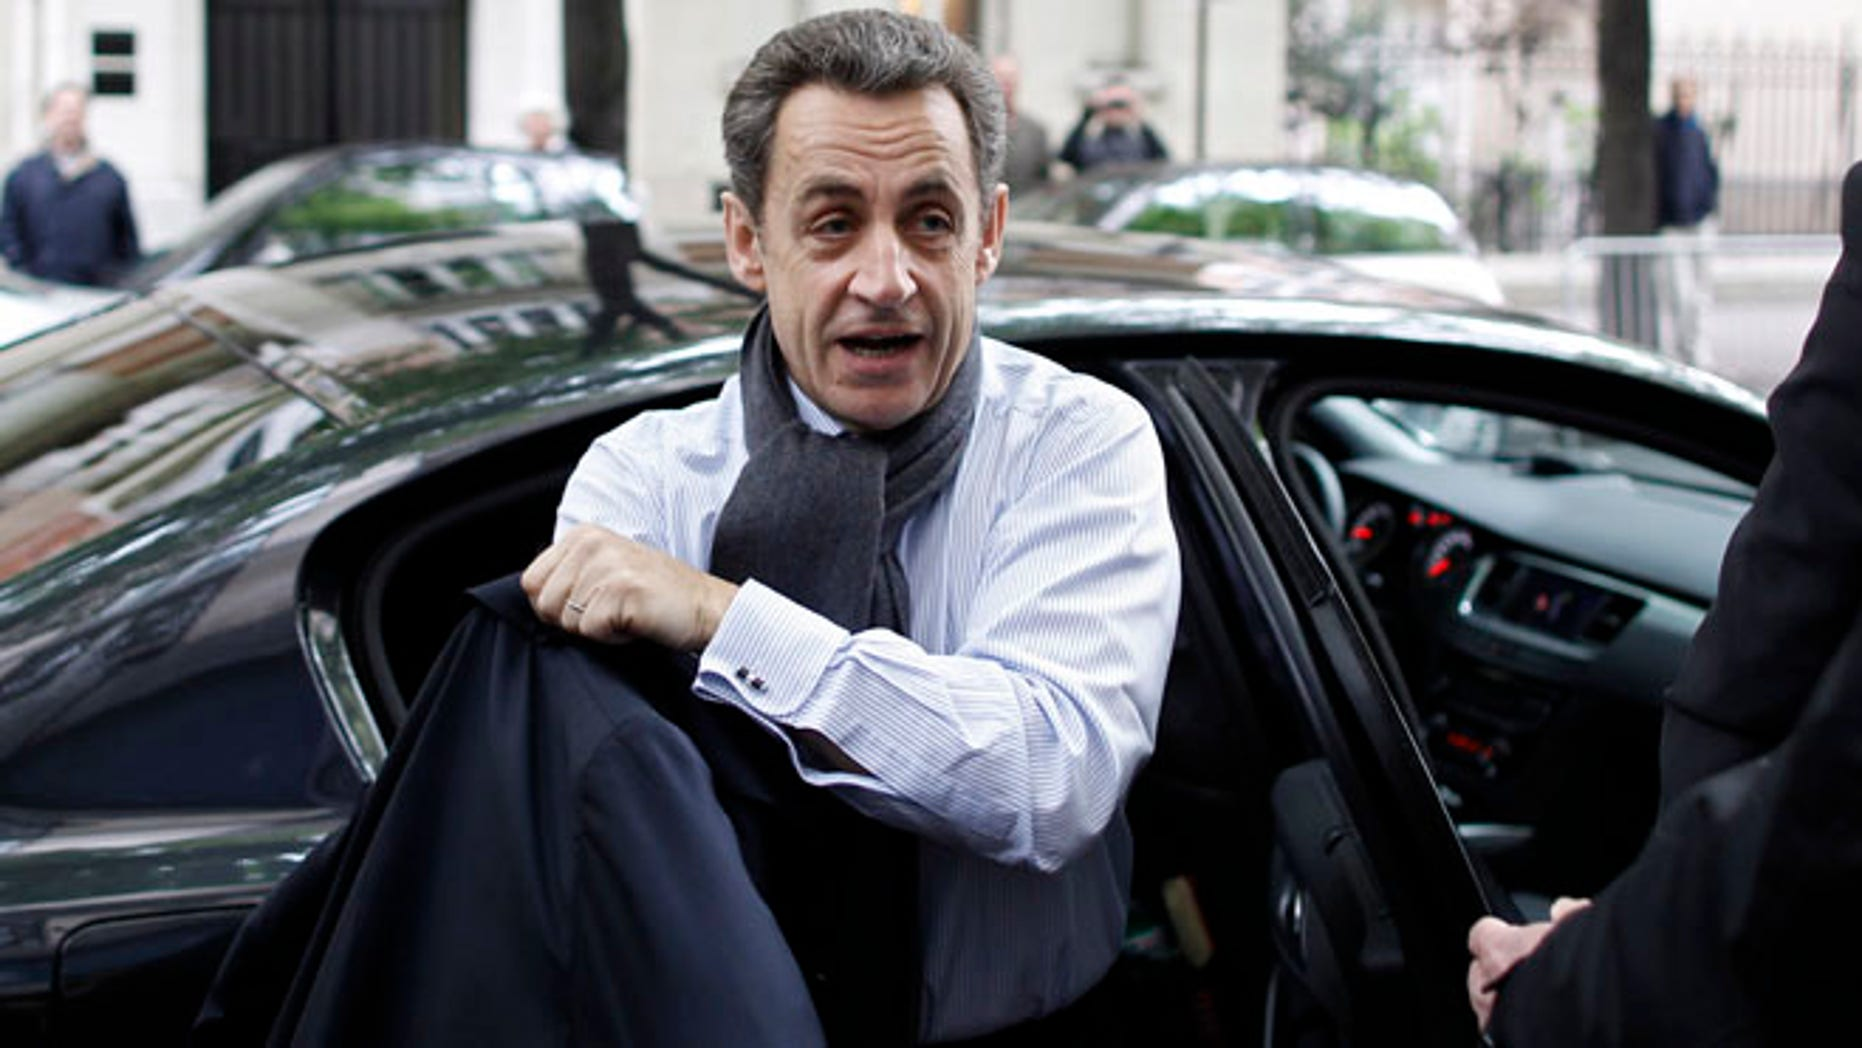 April 23: French President and UMP party candidate for the elections Nicolas Sarkozy arrives at his campaign headquarters the morning after the first round of voting in Paris.